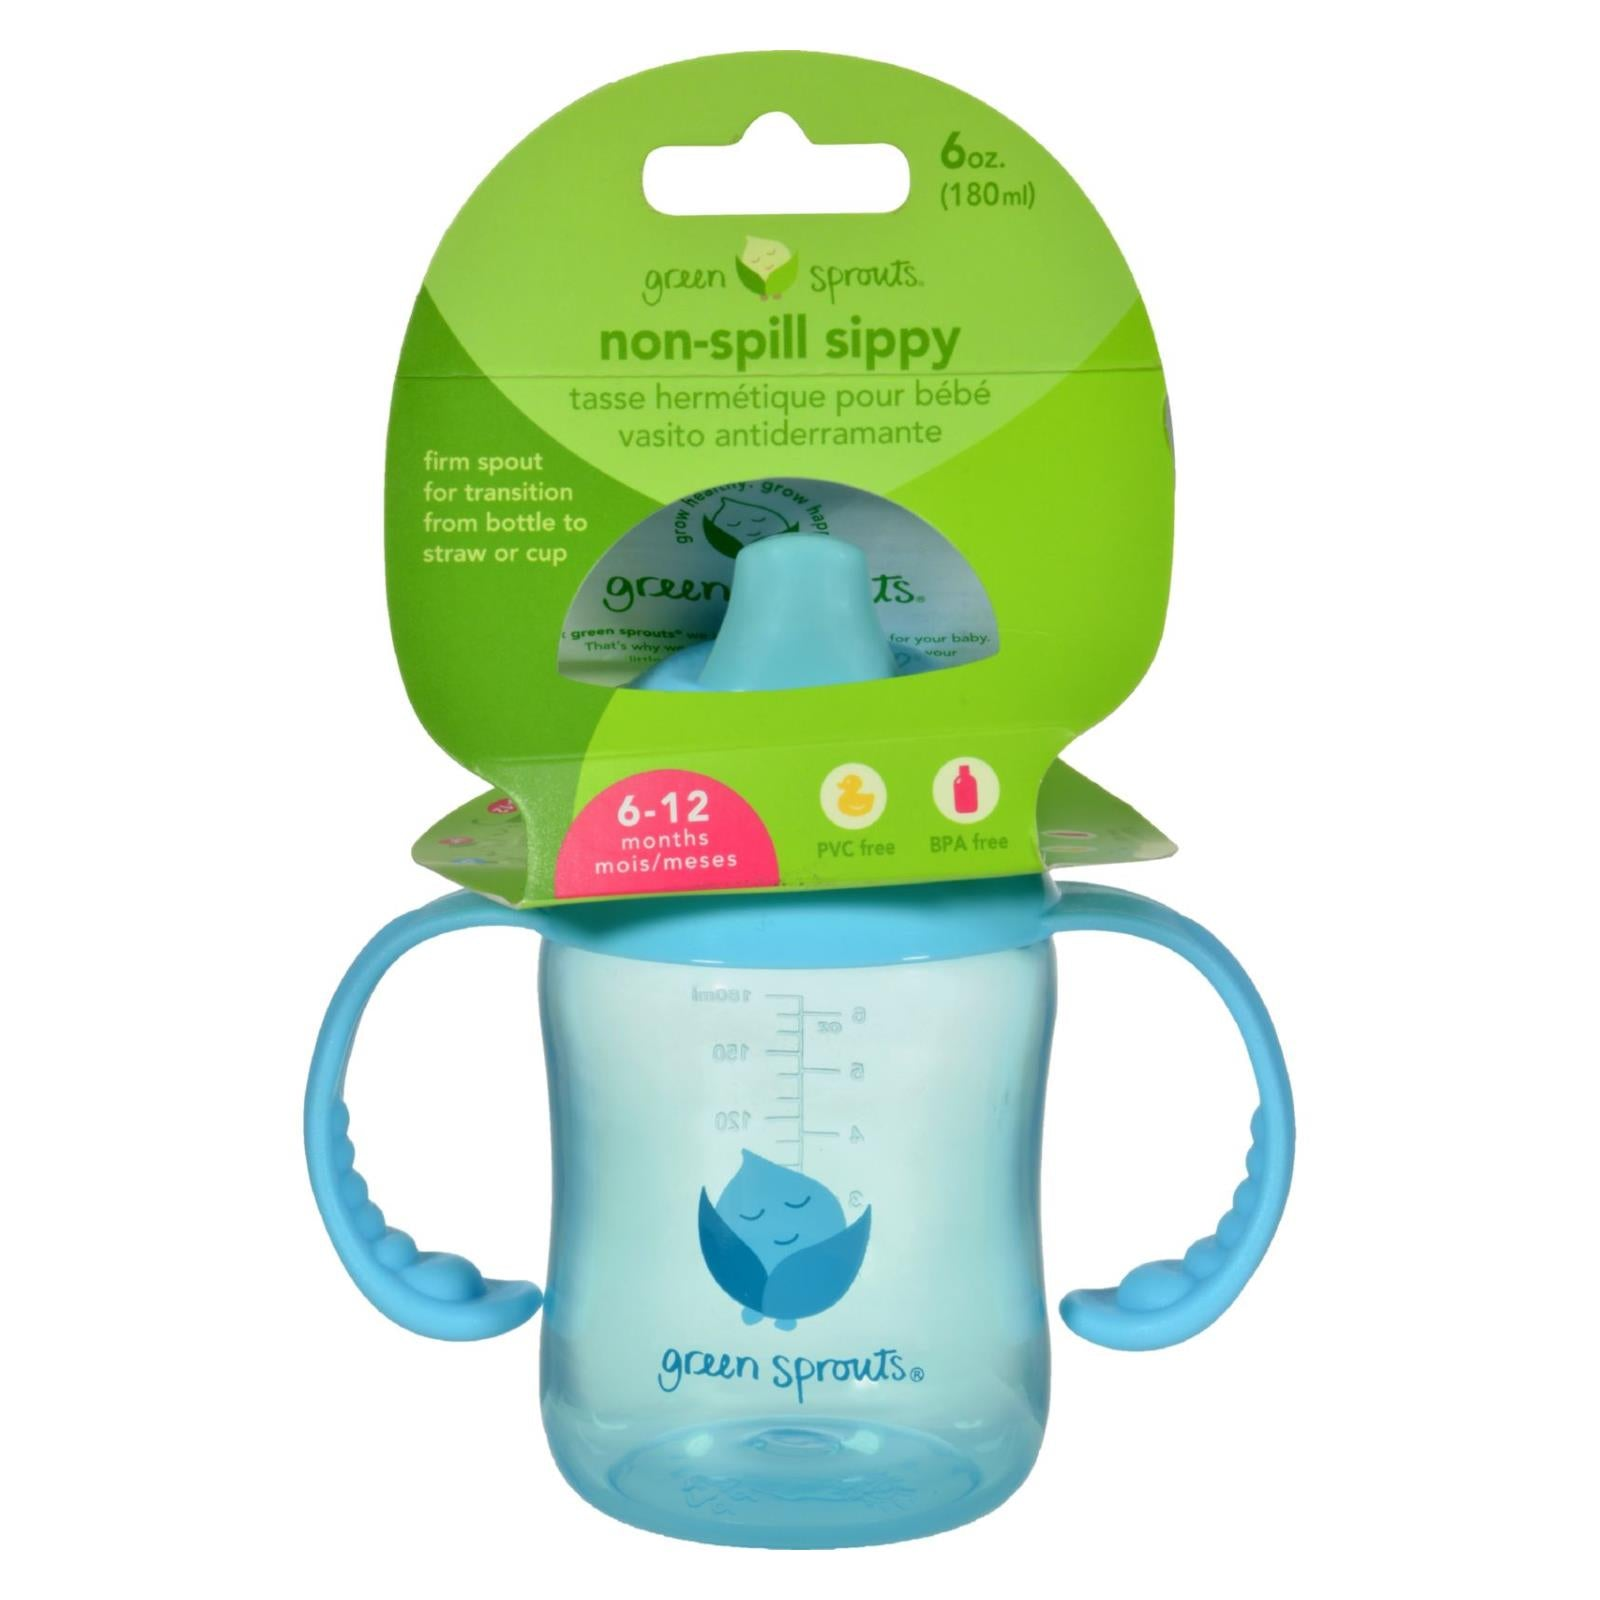 Buy Green Sprouts Sippy Cup - Non Spill Aqua - 1 ct - Bottles and Cups from Veroeco.com